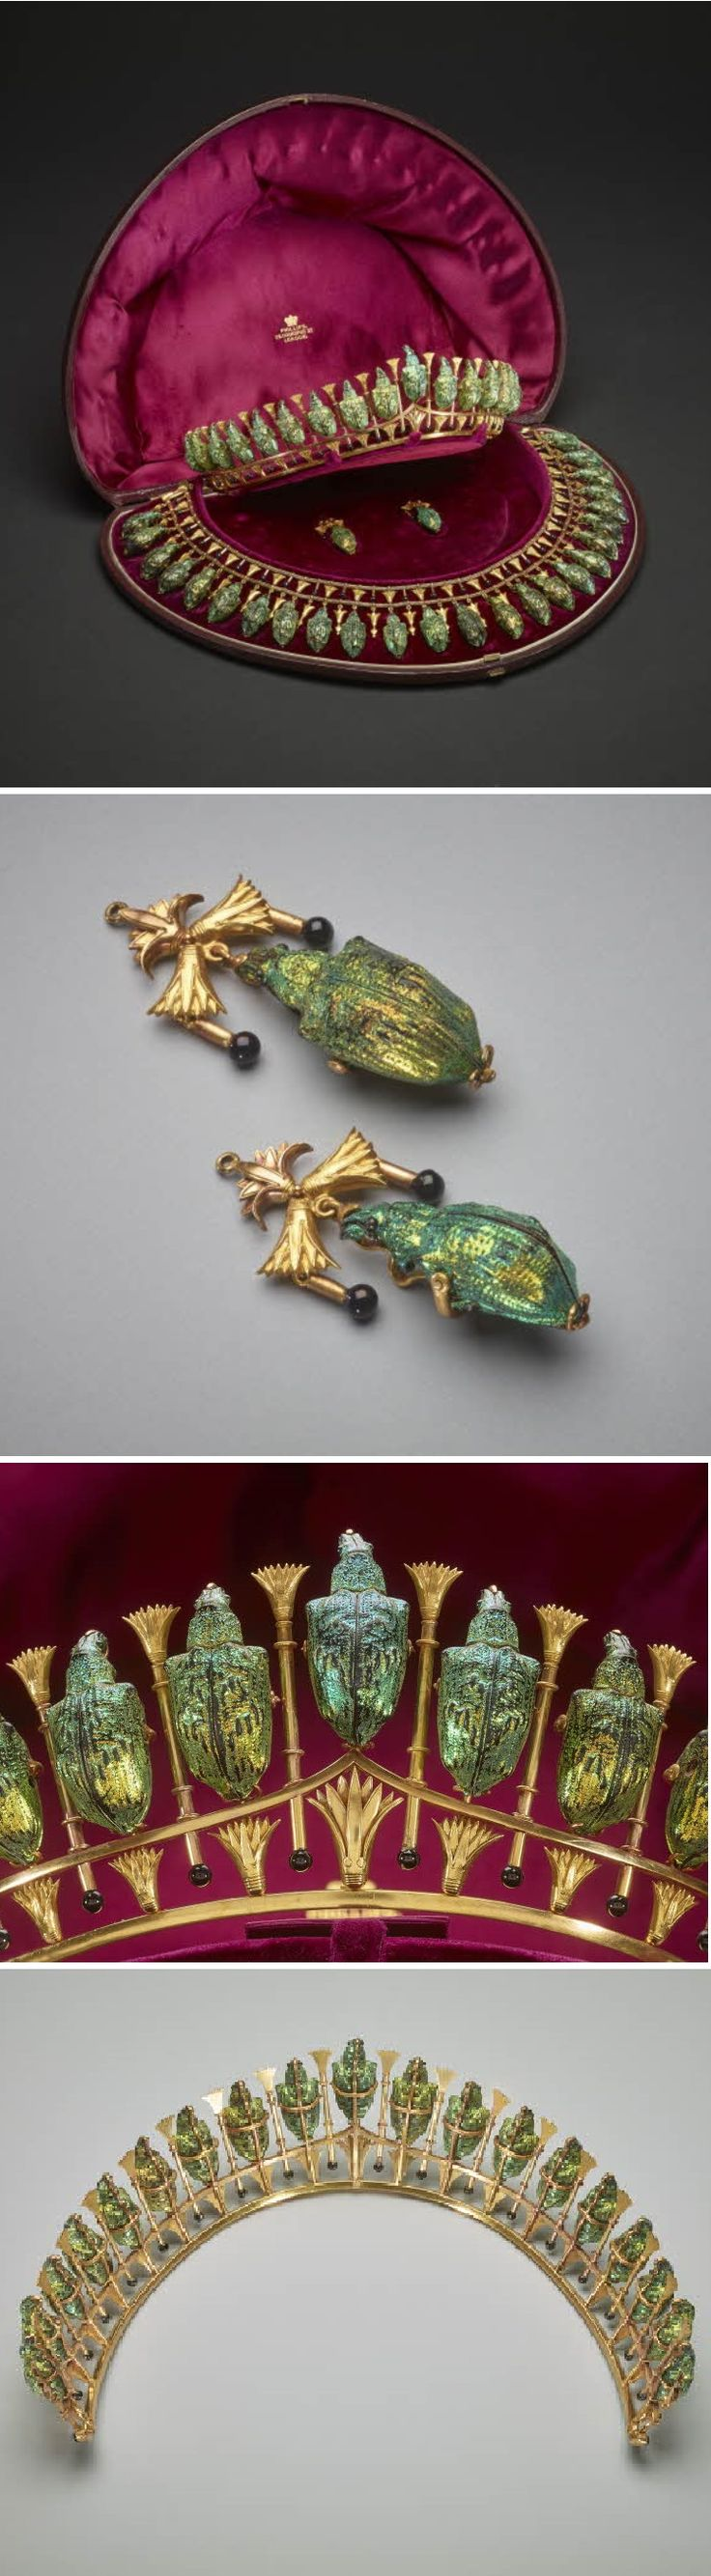 Lady Granville's Egyptian Revival parure, Phillips Bros., London, 1884-85. Comprising a tiara, necklace and earrings formed of dried South American weevils with iridescent green wing cases, mounted in gold in the Egyptian taste with lotus motifs. On the necklace and earrings, the lotuses are interspersed with tiny gold rods ending in black enamel beads. #PhillipsBrothers #ArchaeologicalRevival